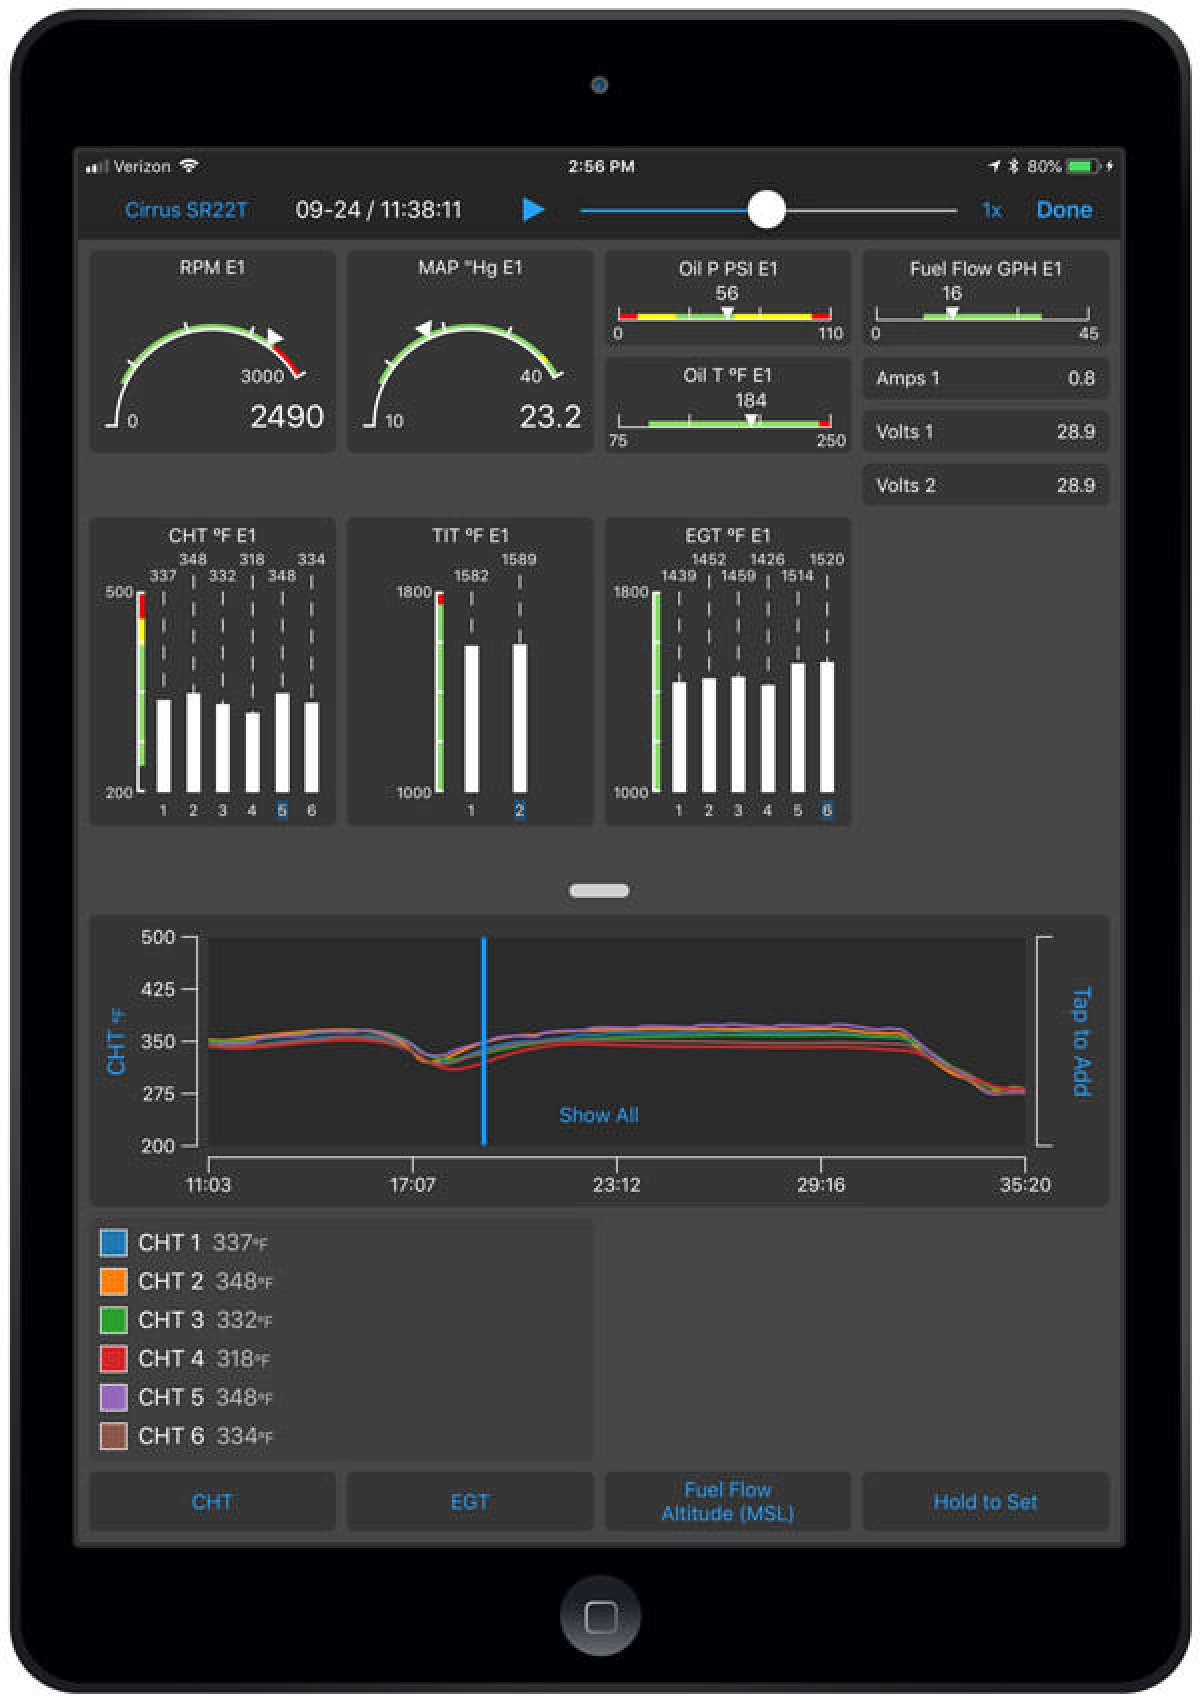 Garmin Pilot App Launches Real-Time Engine Data Display